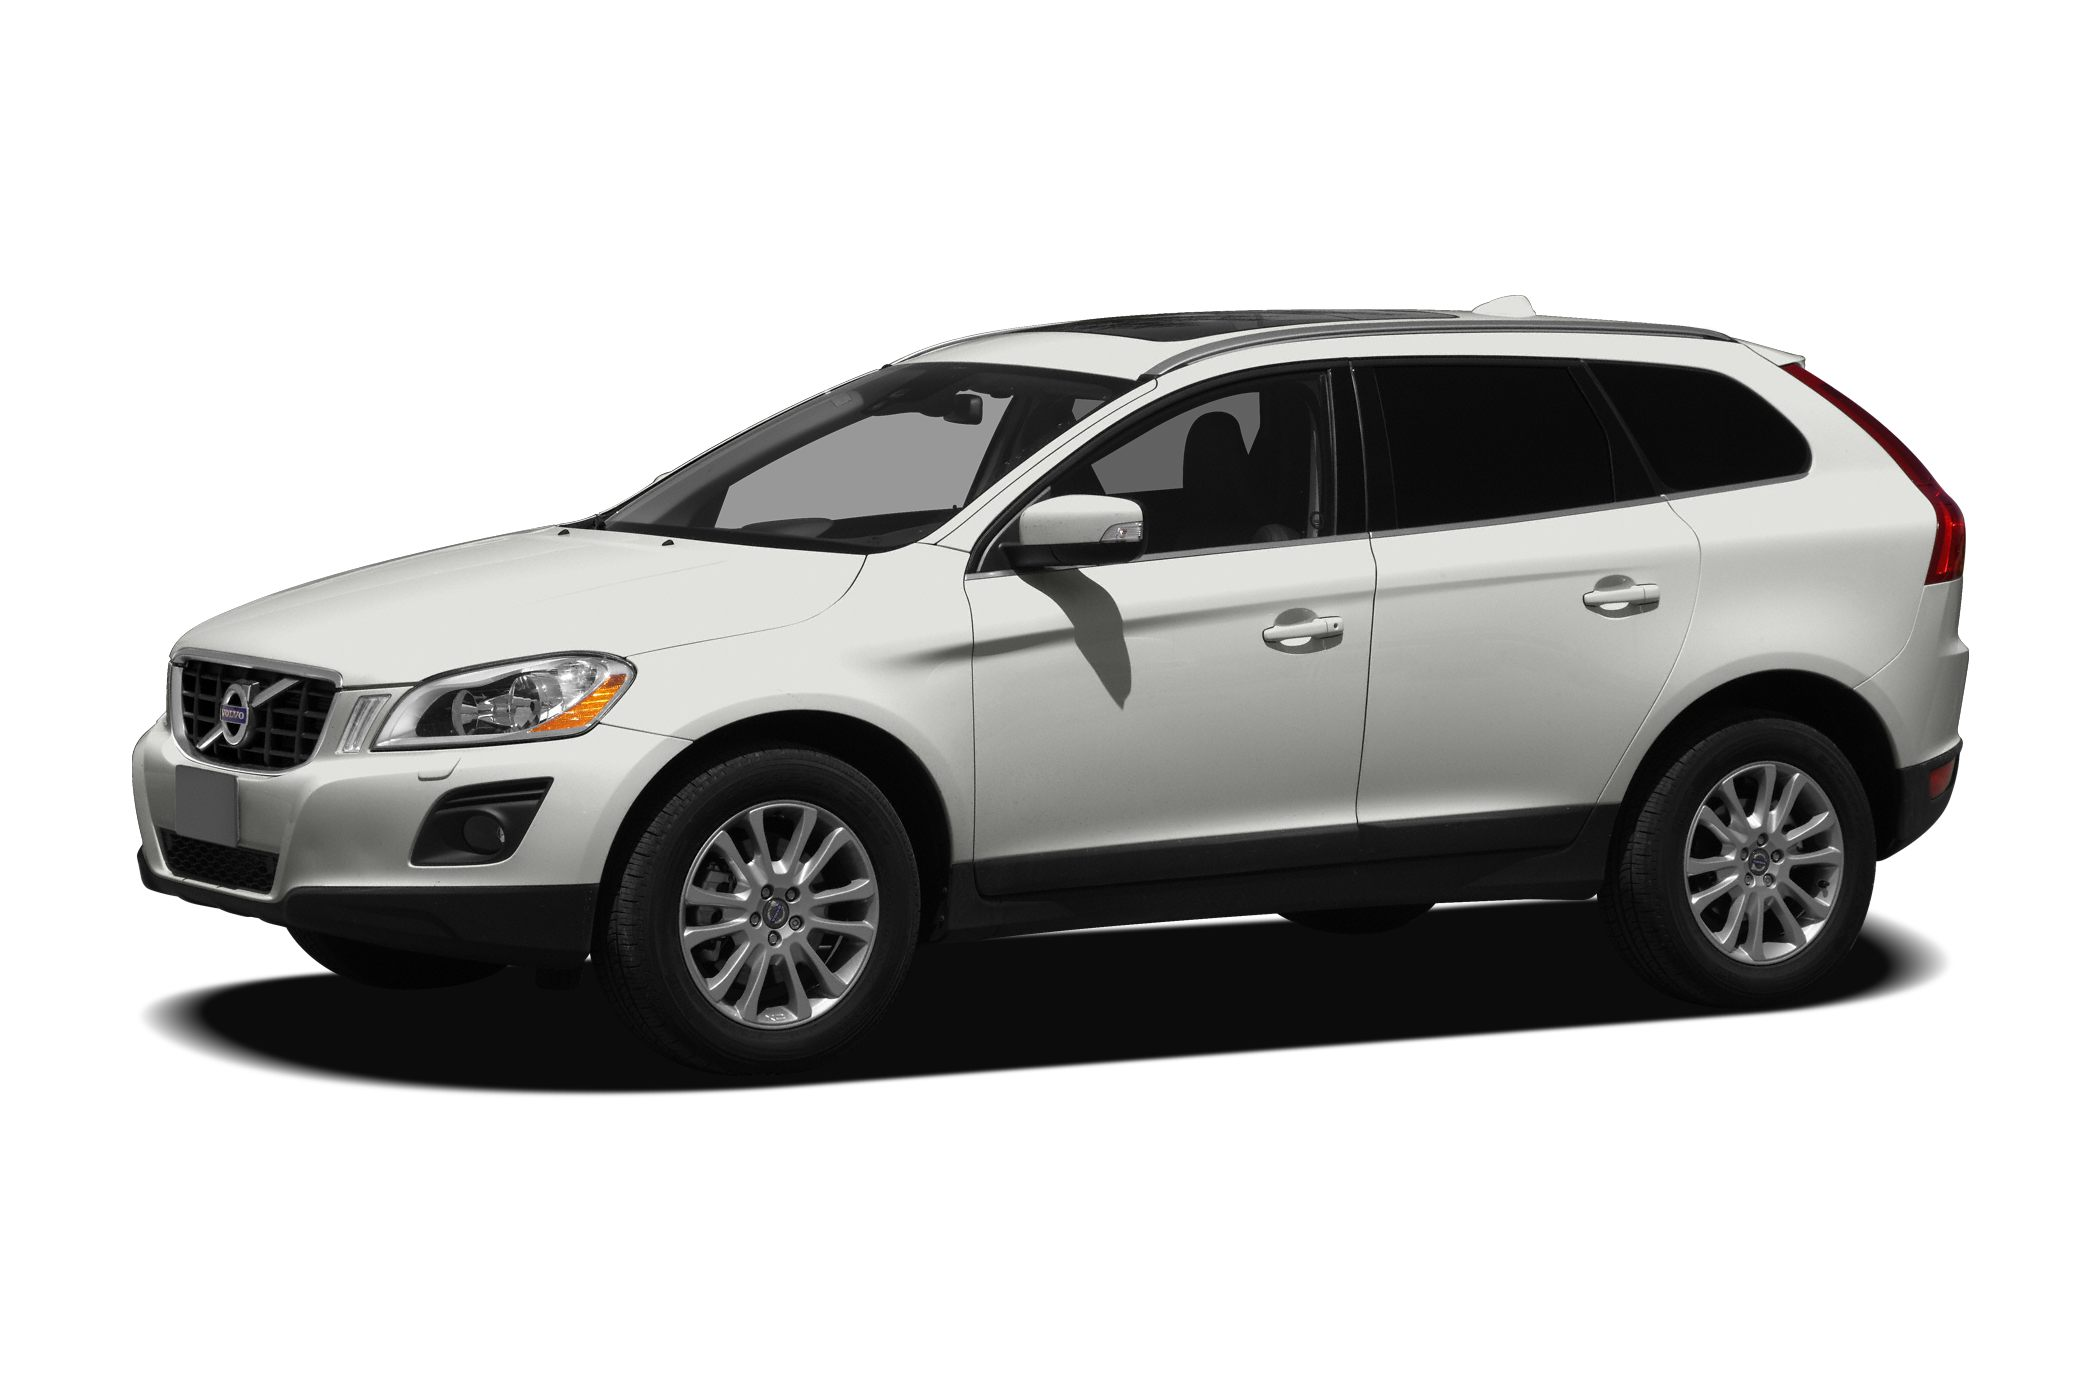 2010 Volvo XC60 T6 SUV for sale in Lexington for $18,690 with 93,927 miles